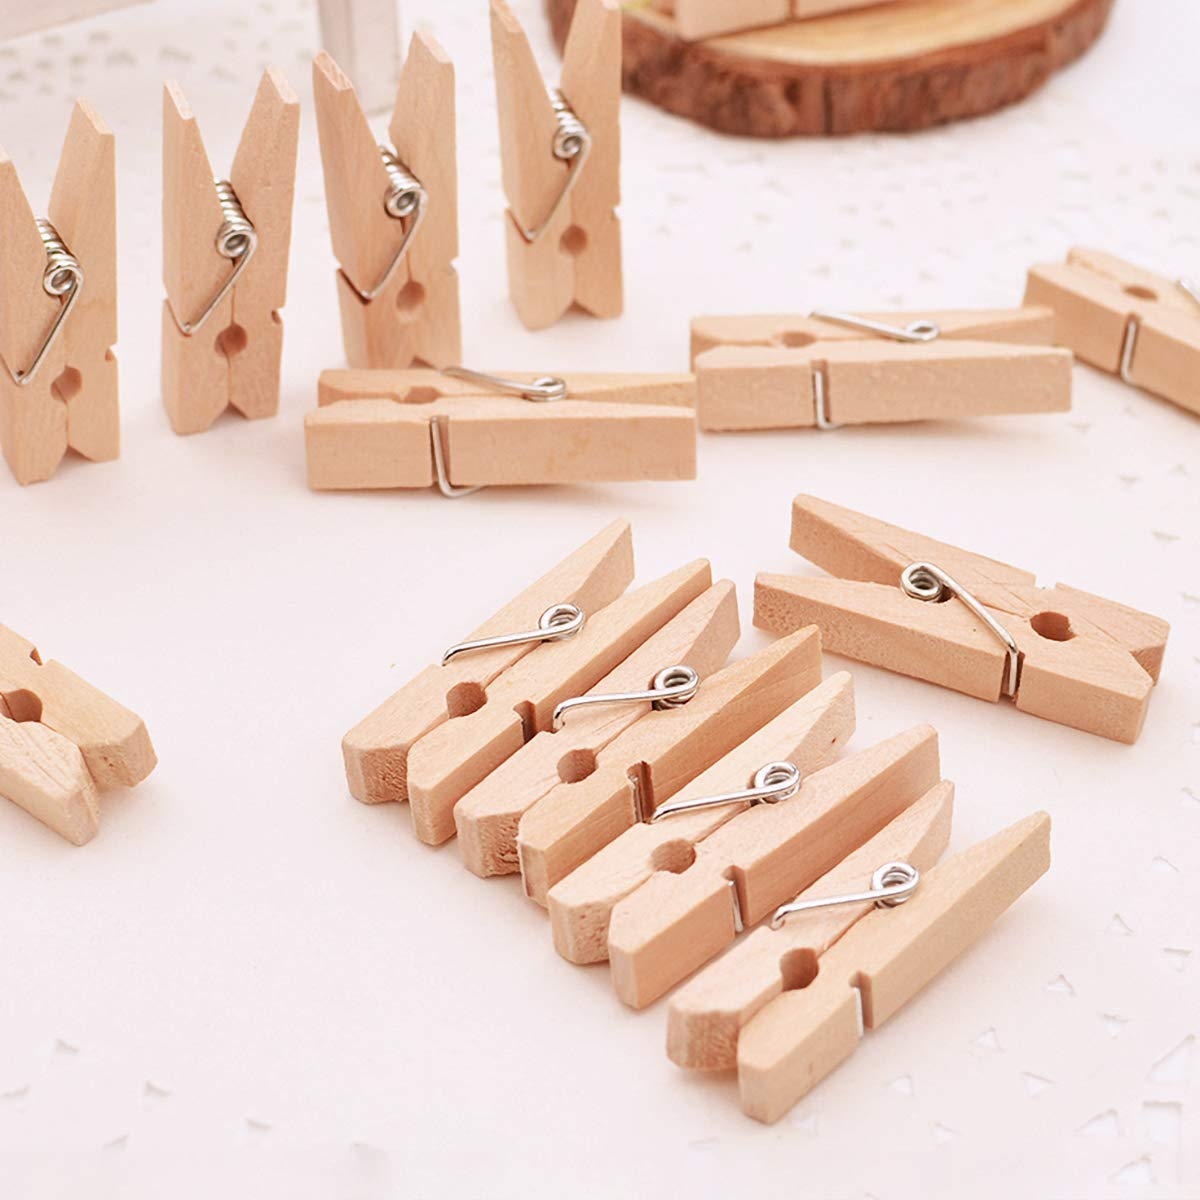 Mini Size 1.0 inch for Arts Crafts Hanging Home DIY Decor Plulatree 25-Pack Wooden Rack Clip Photo Paper Peg Pin Craft Clips Mini Clothespins Photo Clips for Grid Panel Photos